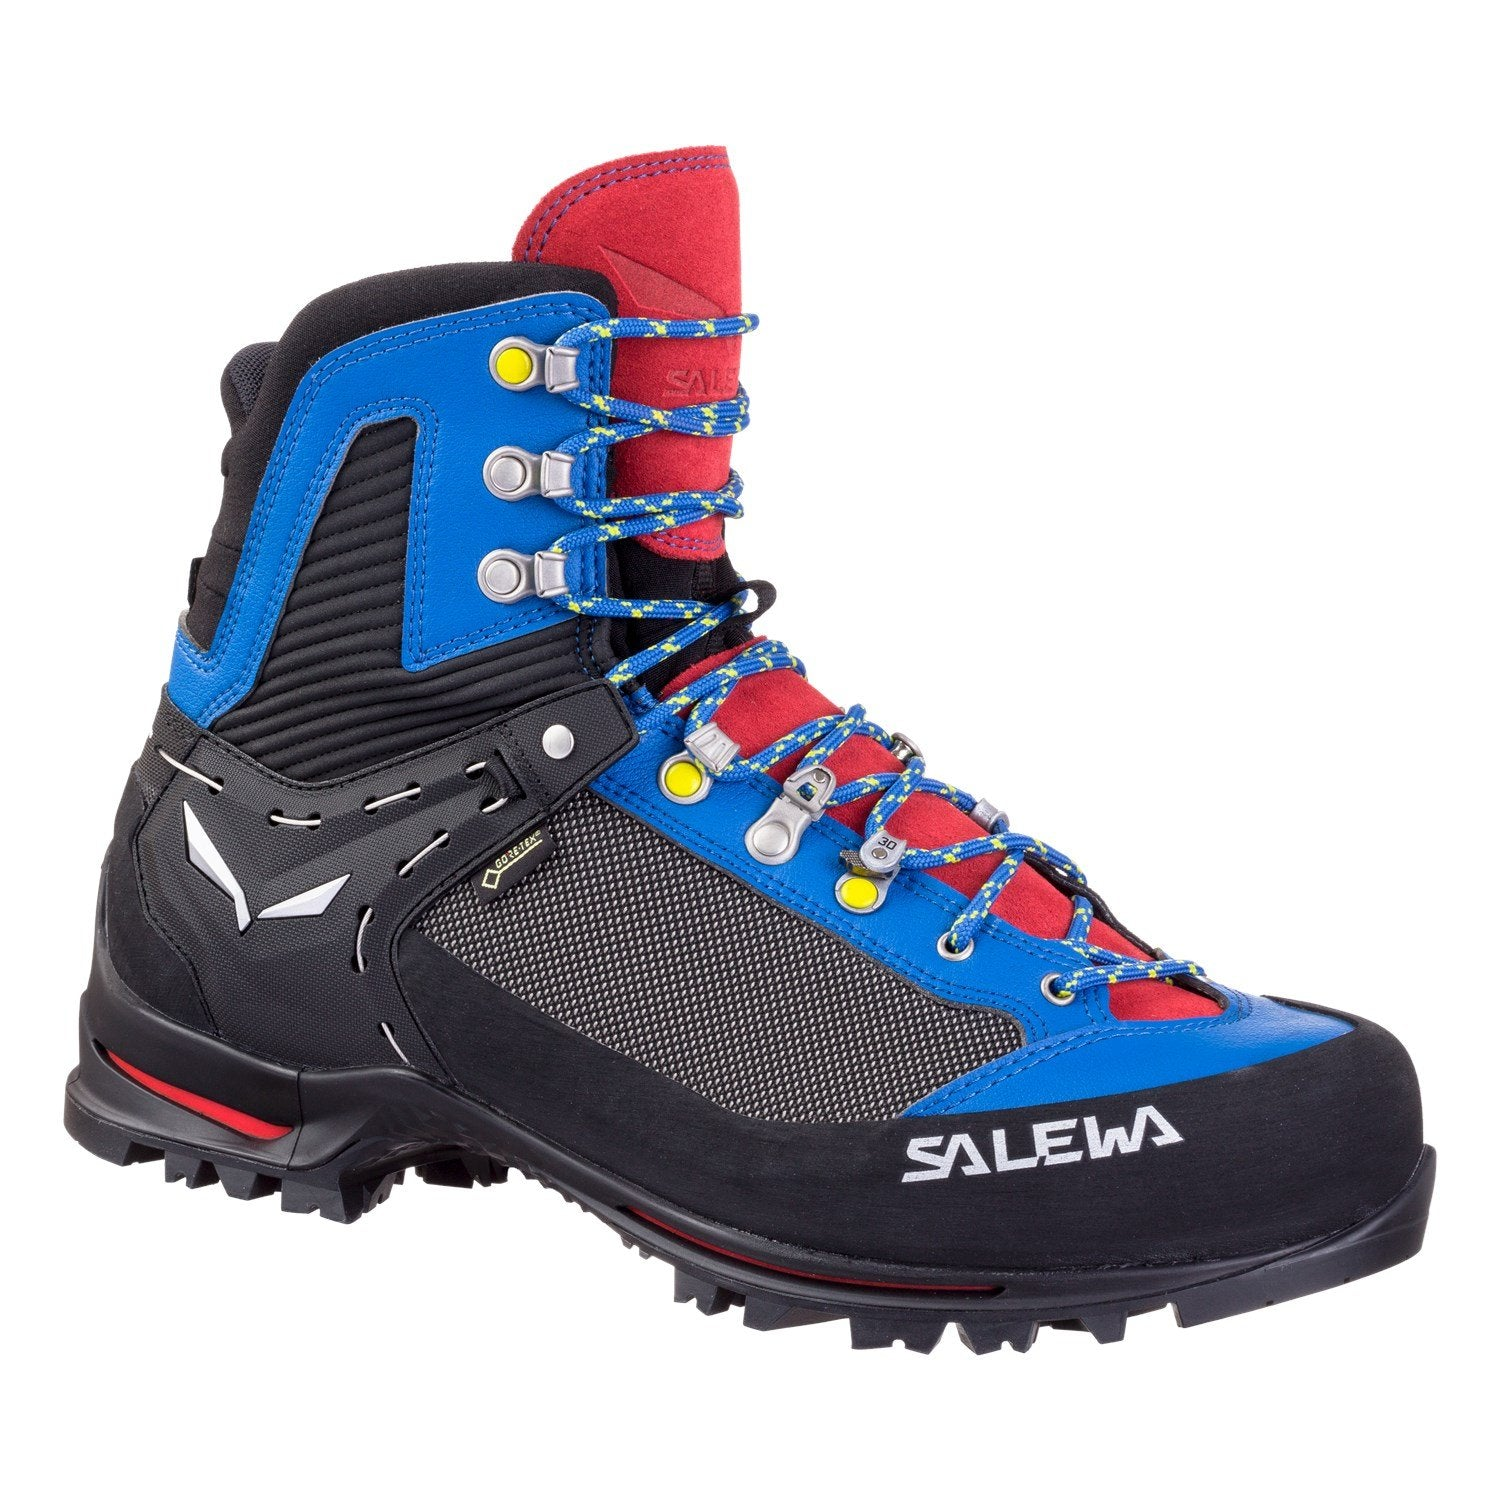 Salewa Raven 2 GTX Mountaineering Boot, outer/side view in black, blue and red colours